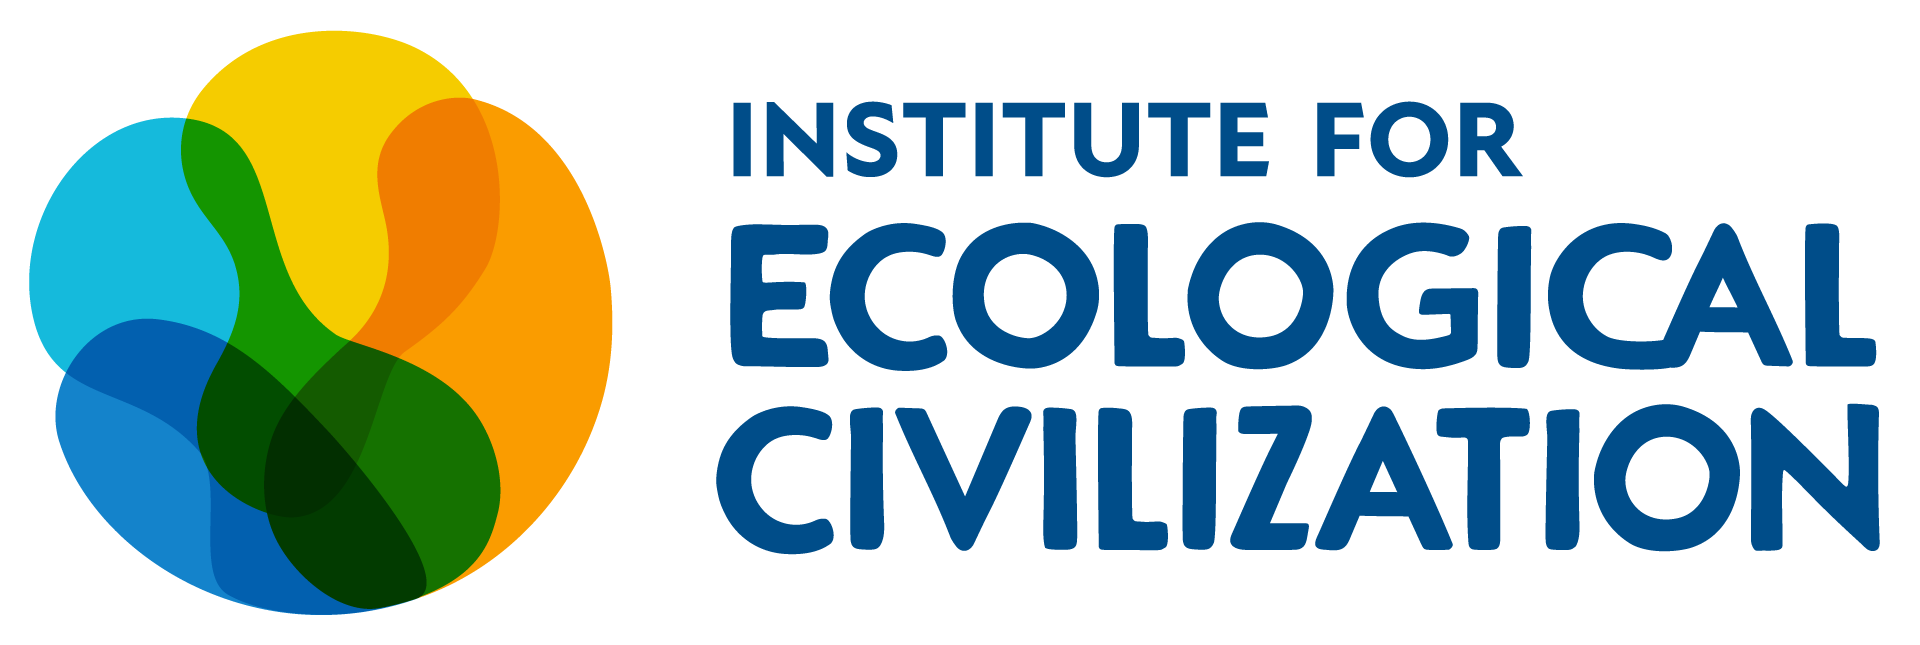 Institute for Ecological Civilization